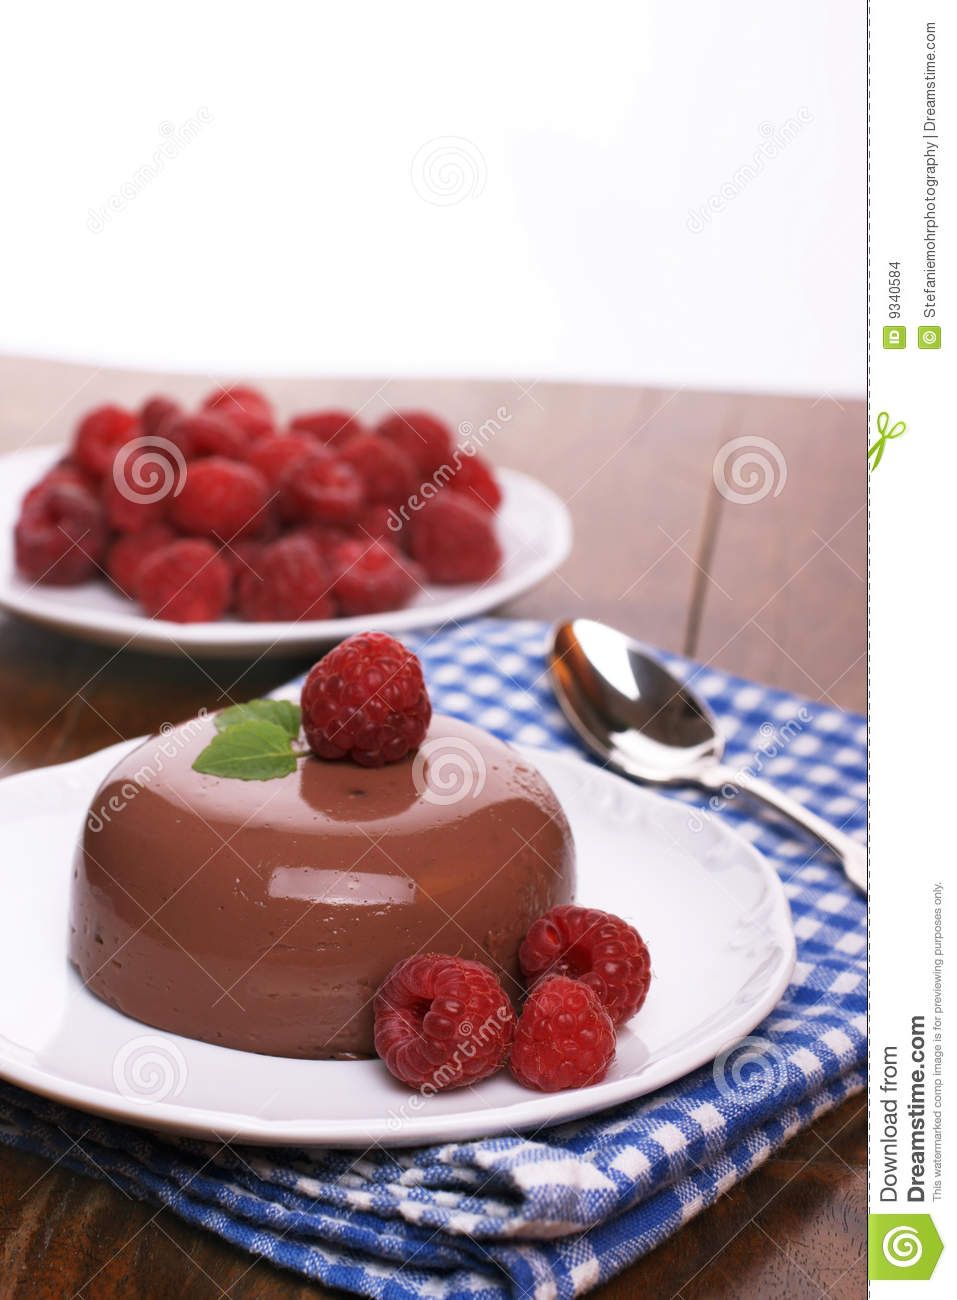 Chocolate Blancmange Stock Images - Image: 9340584